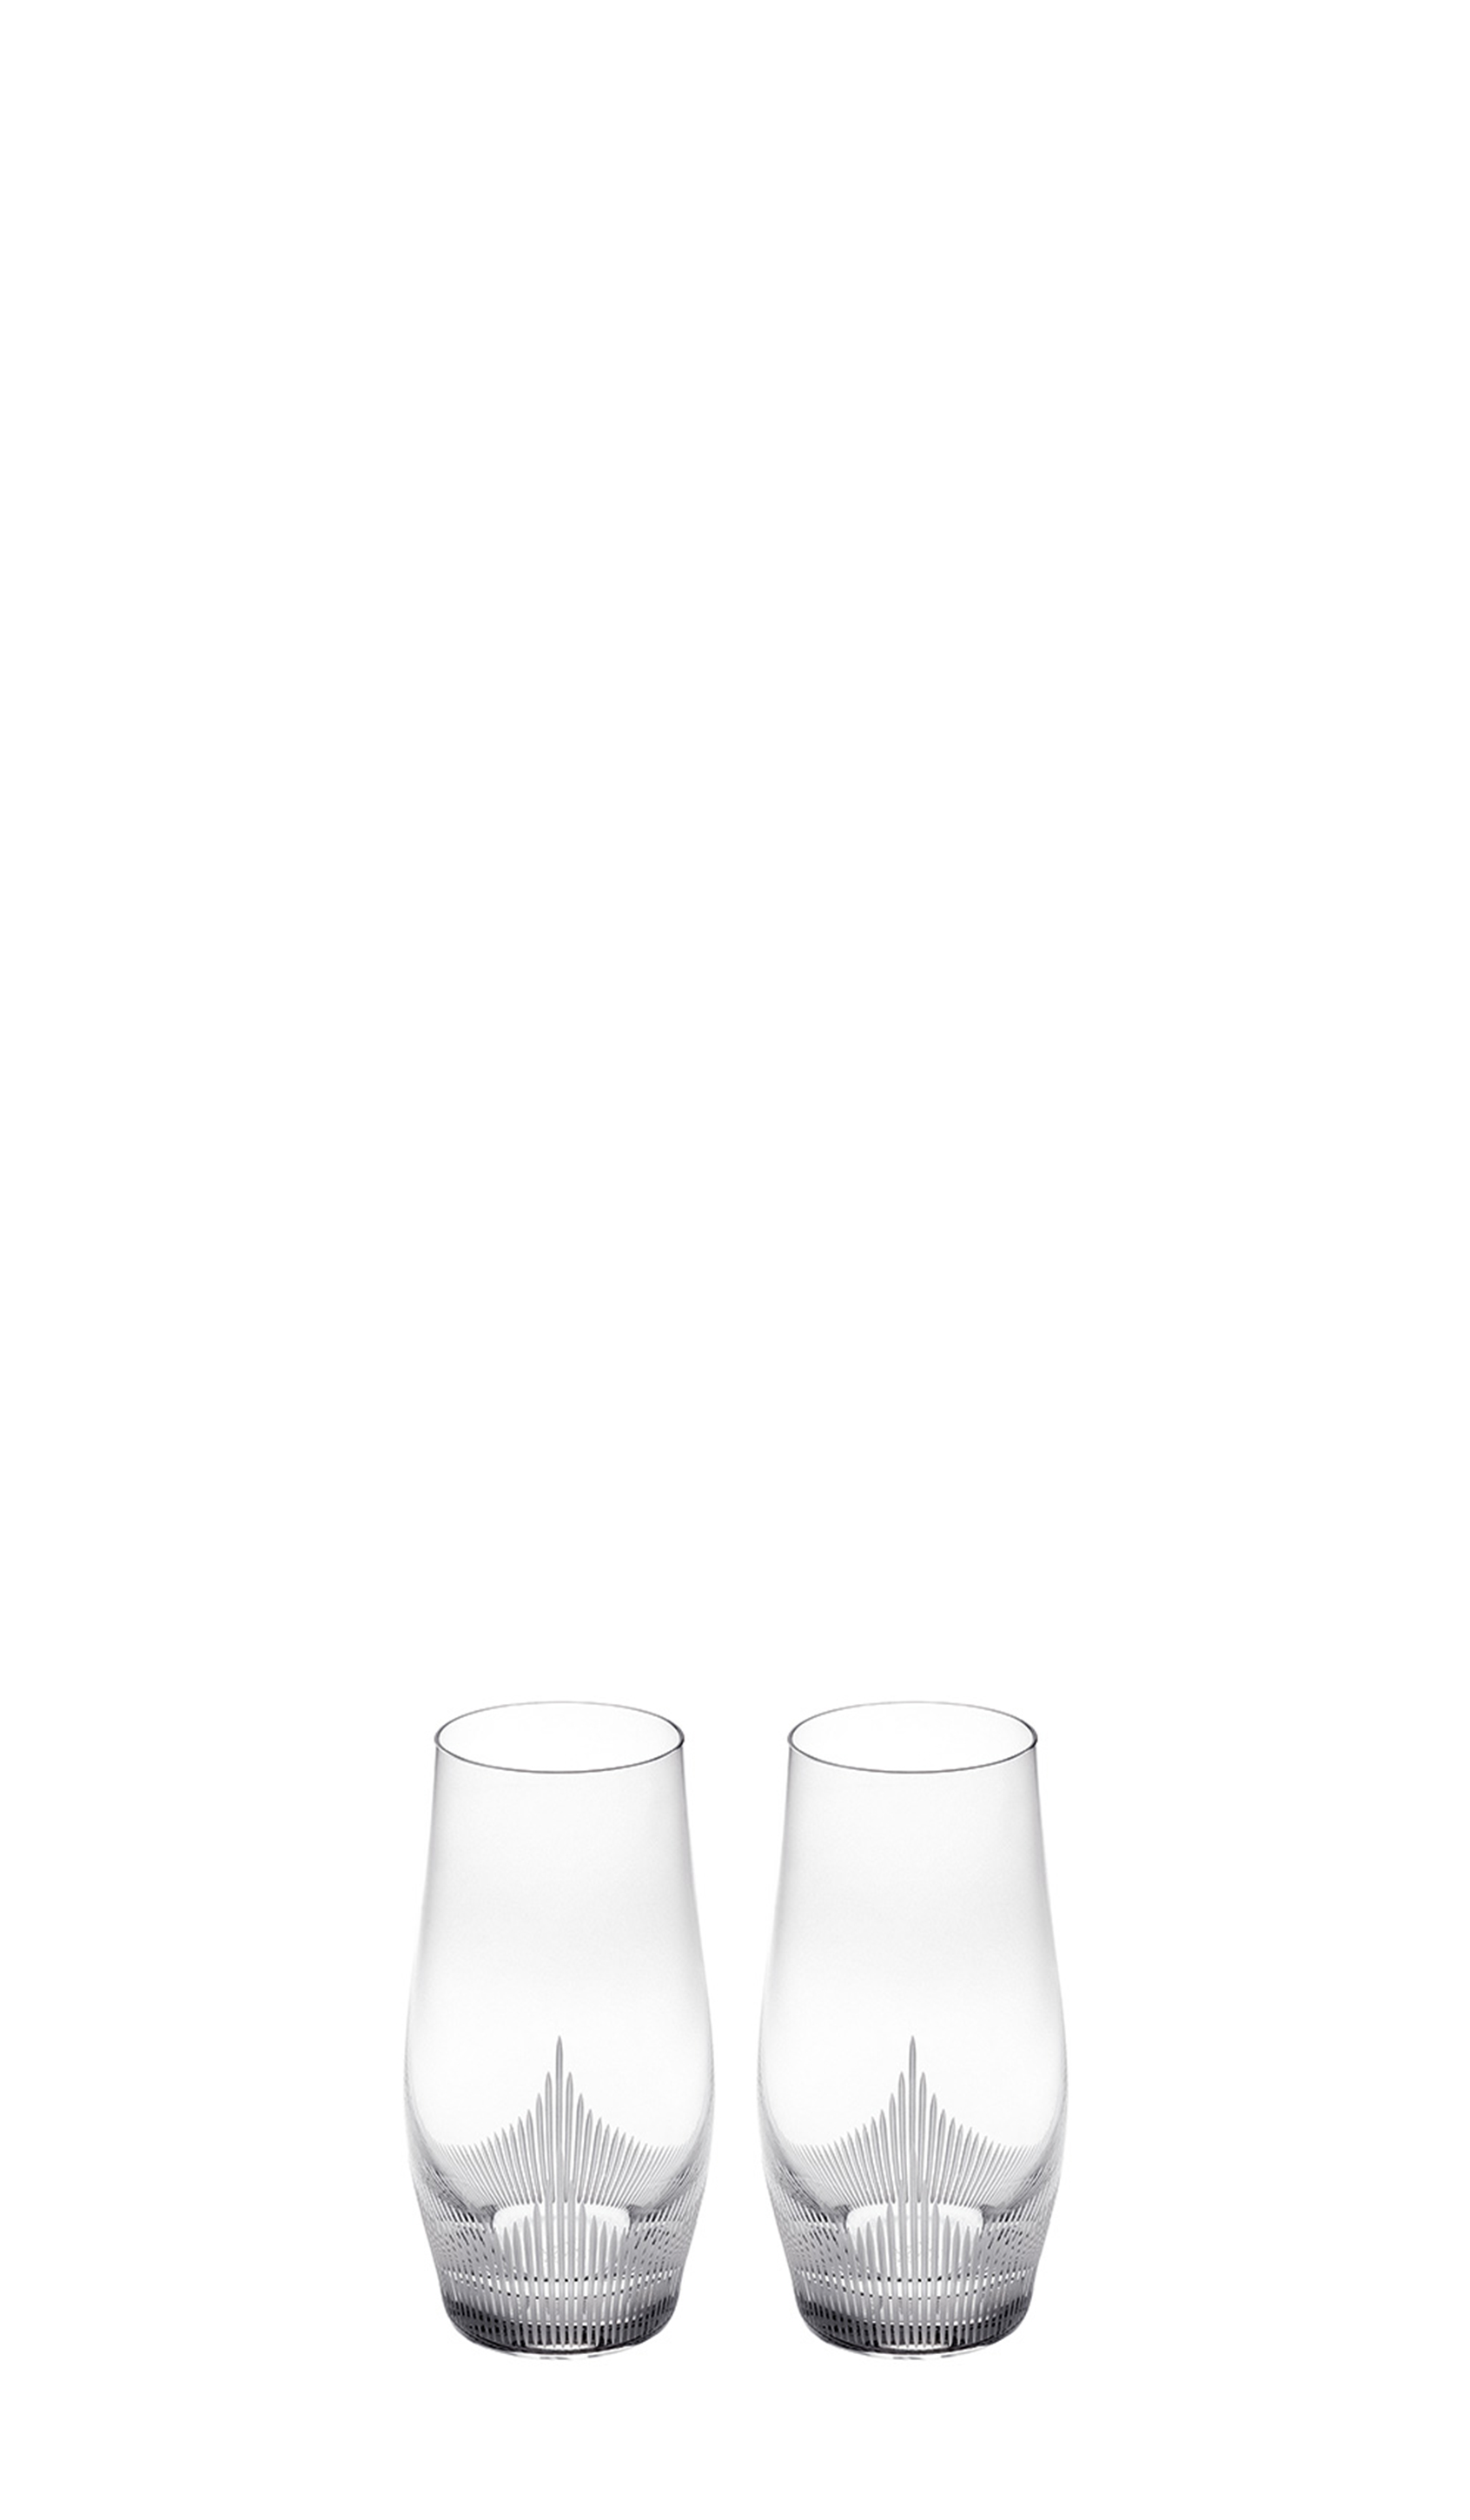 Longdrinkglas, 2er Set, 100 Points